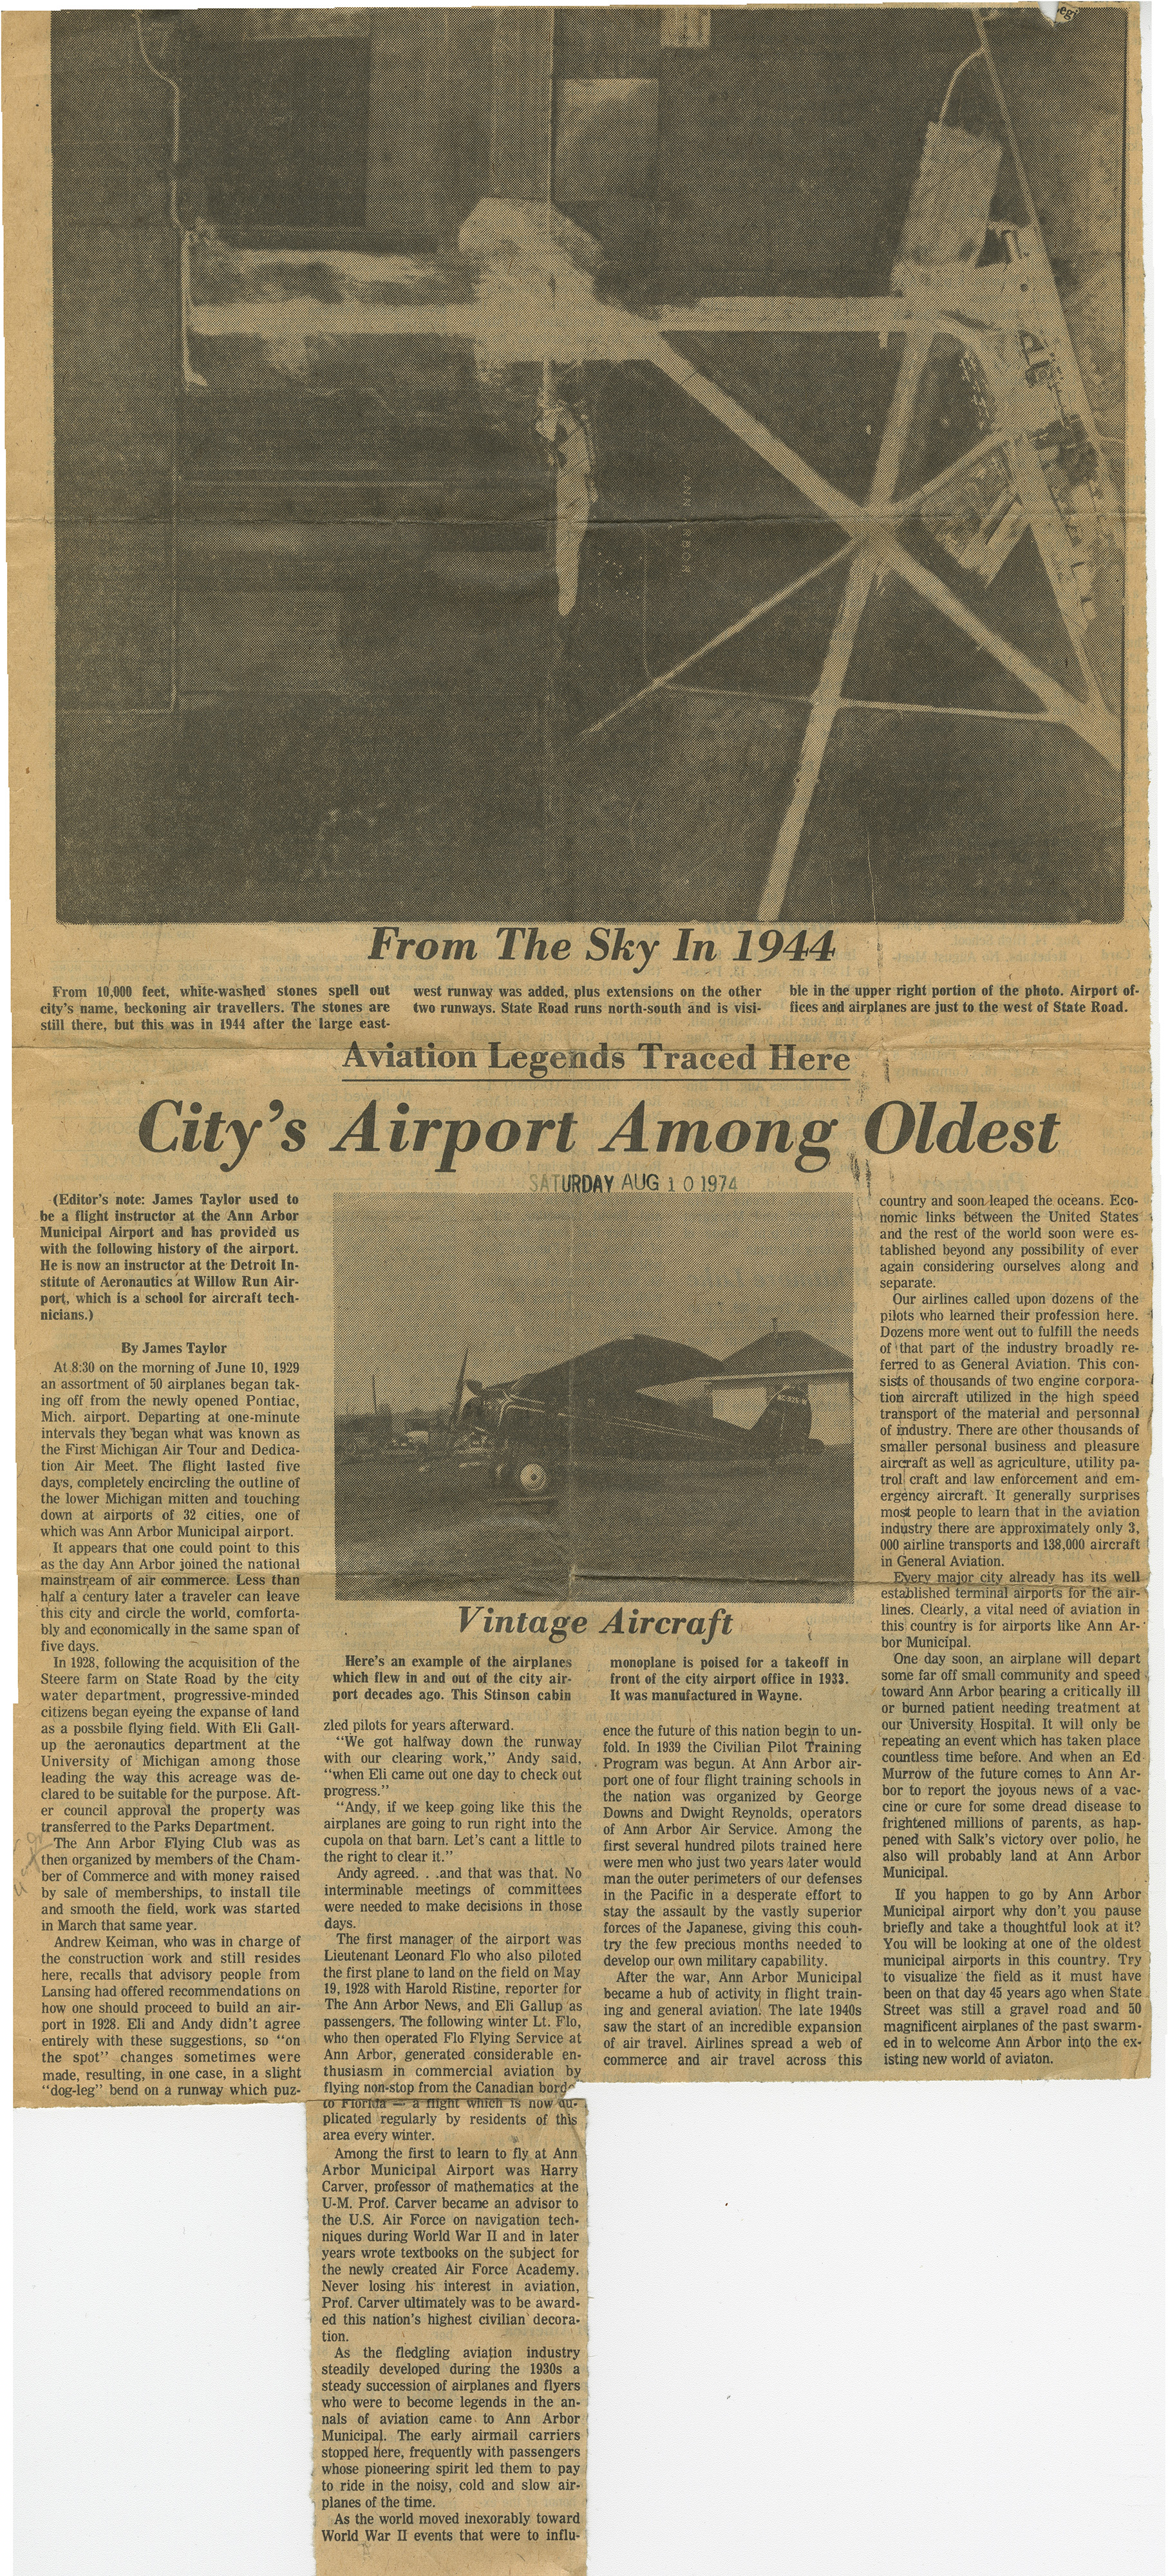 City's Airport Among Oldest image